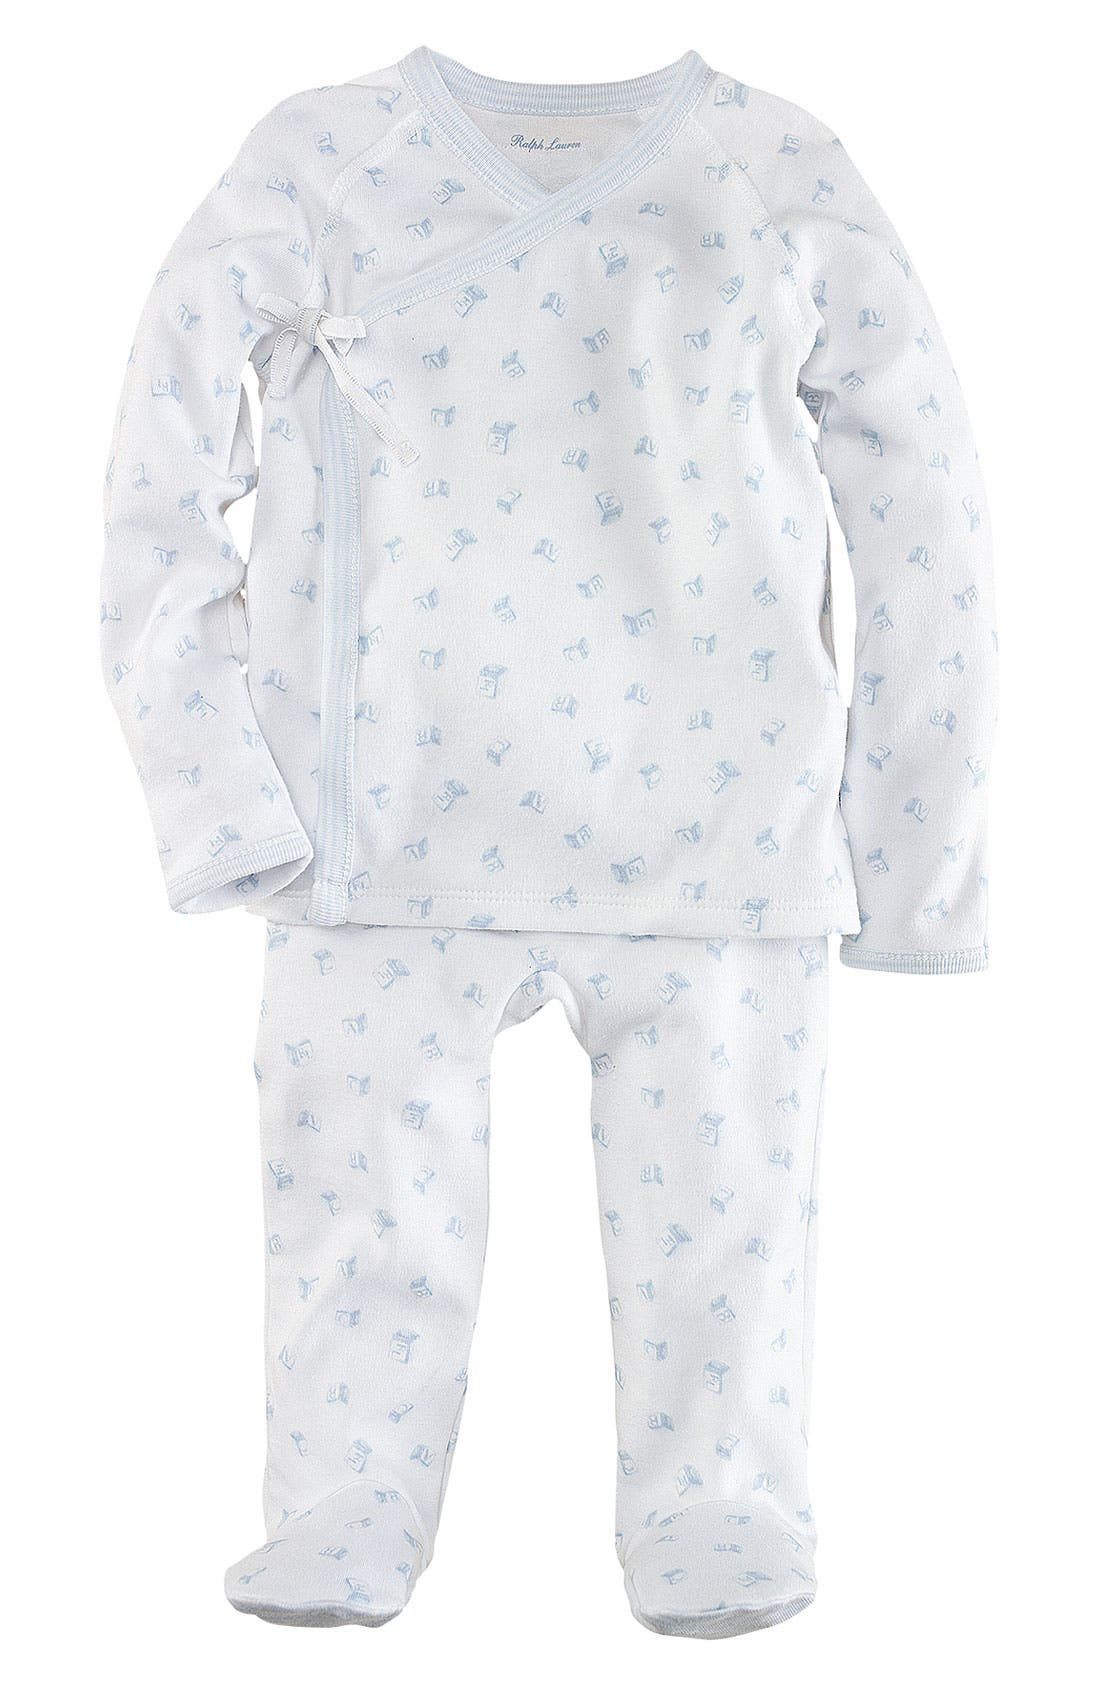 Main Image - Ralph Lauren Top & Footed Leggings (Infant)